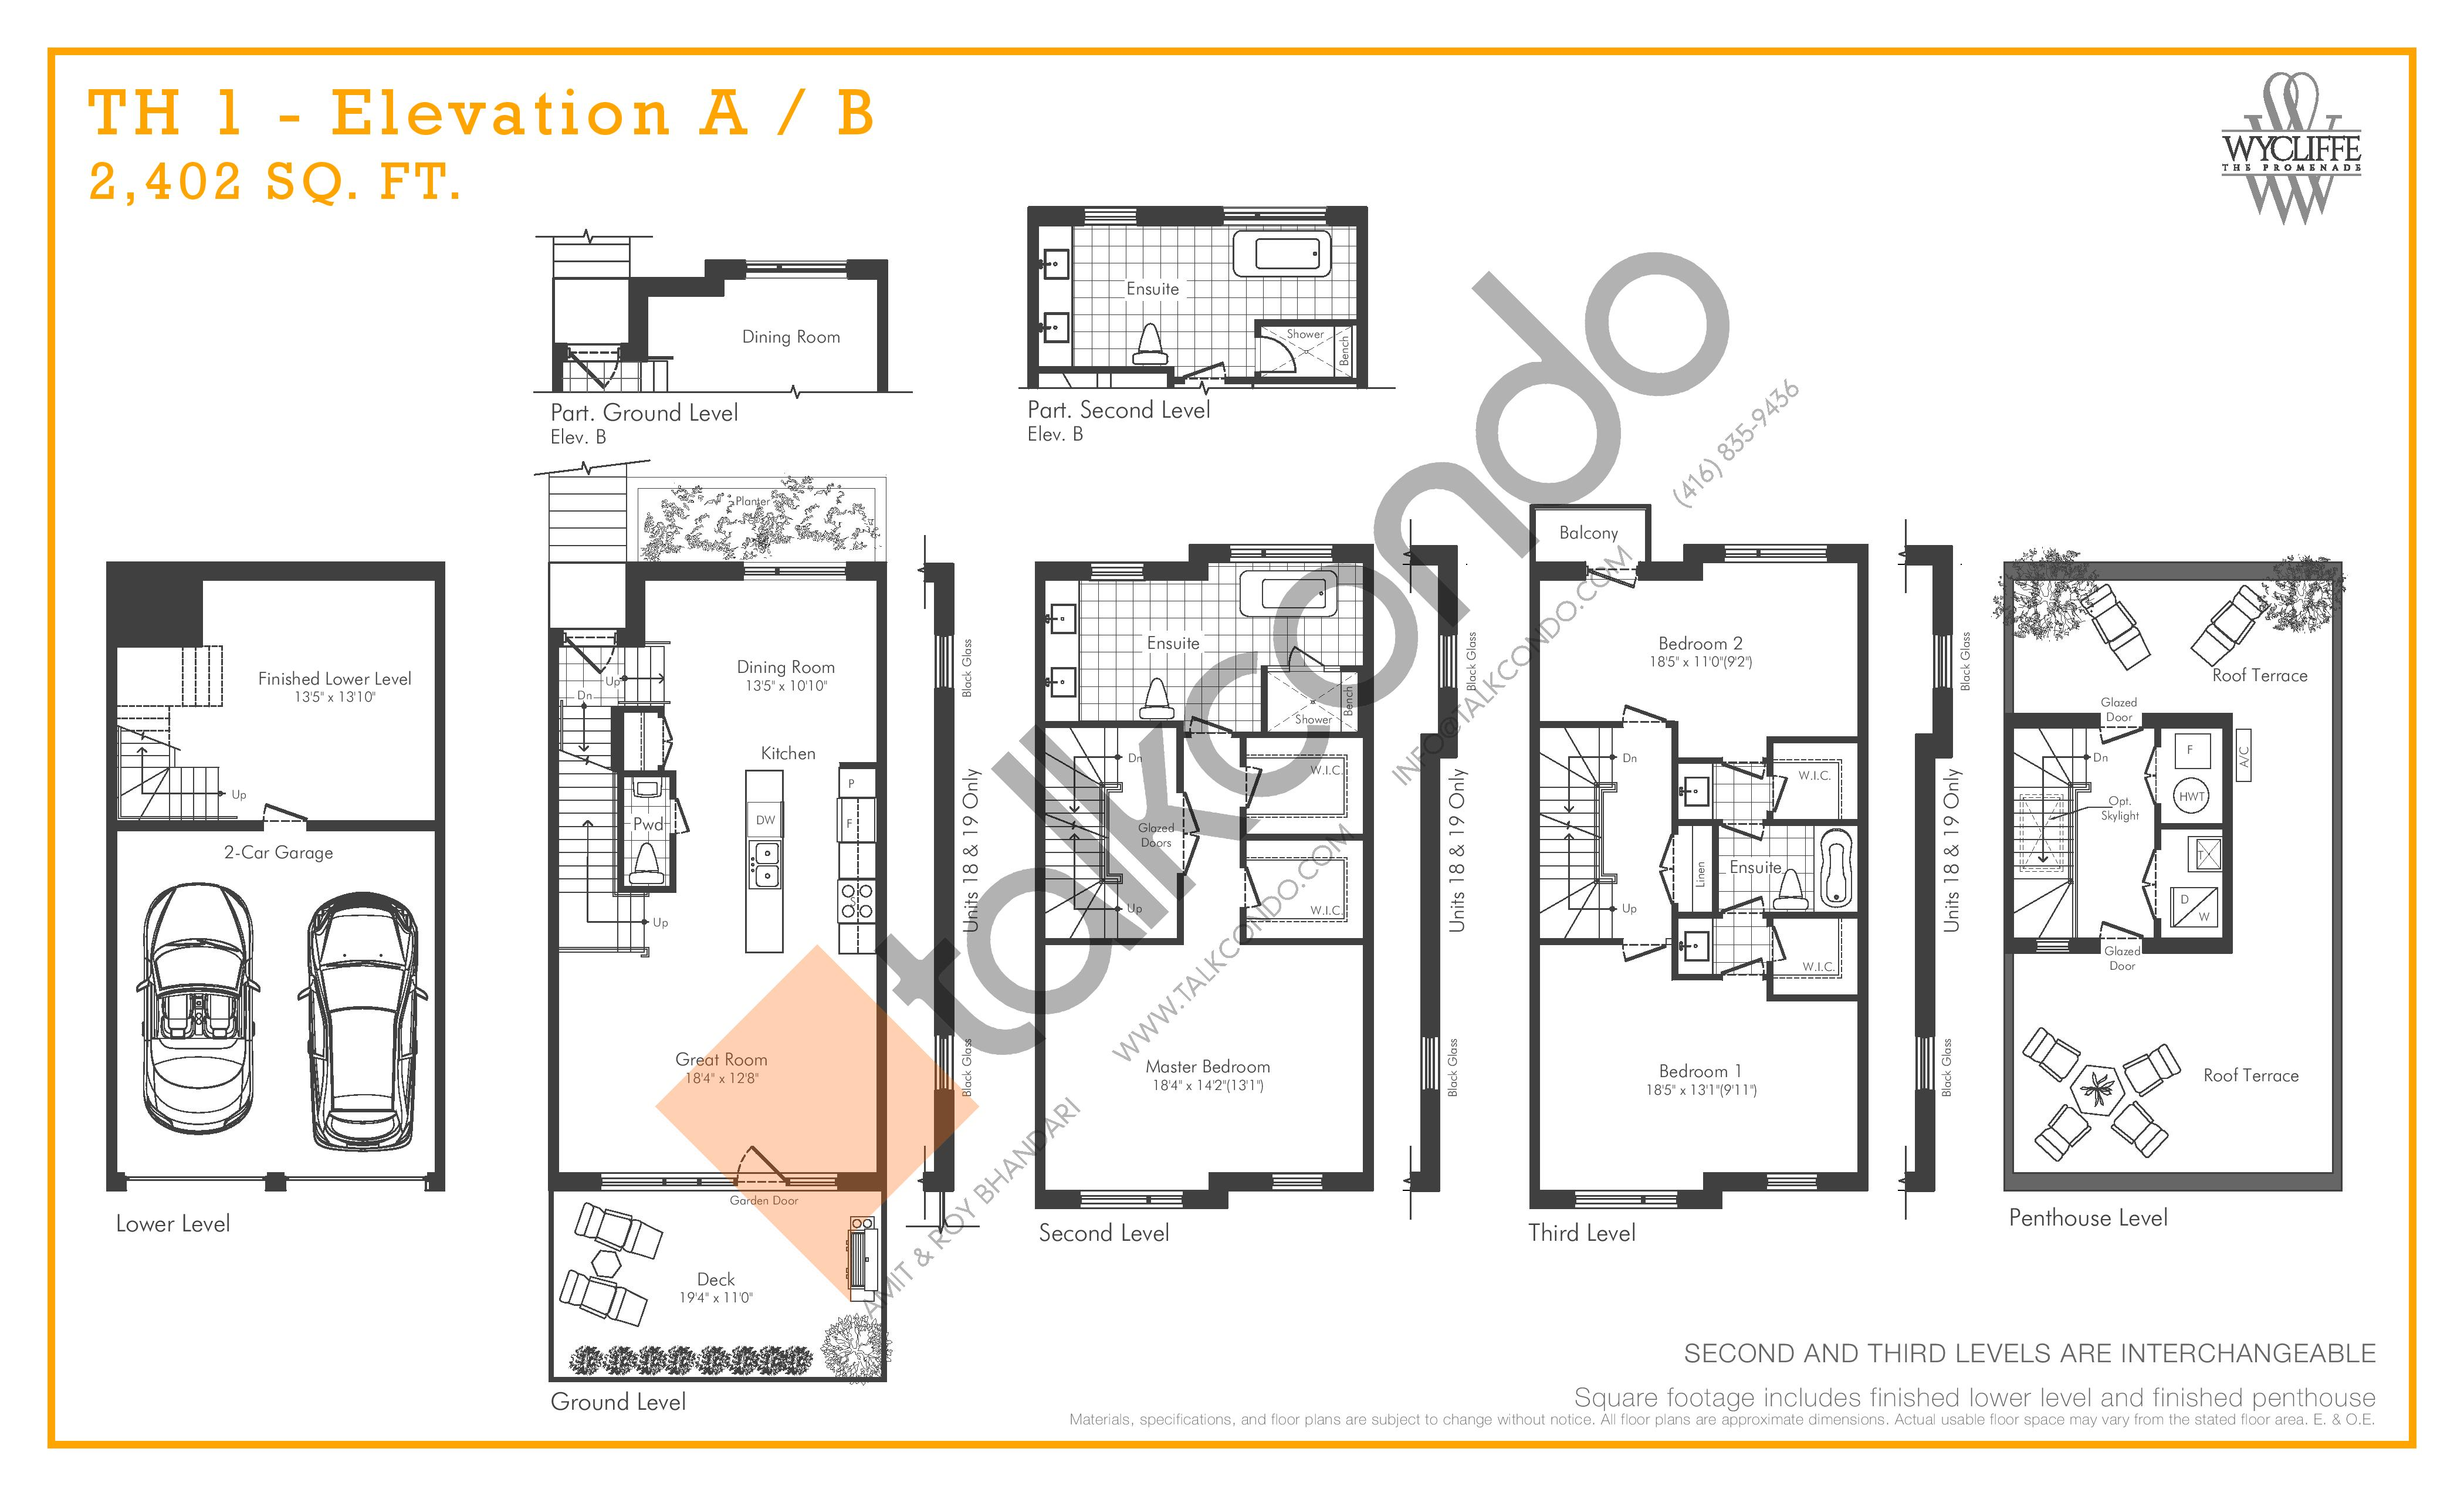 TH 1 - Elevation A/B Floor Plan at Wycliffe at the Promenade - 2402 sq.ft